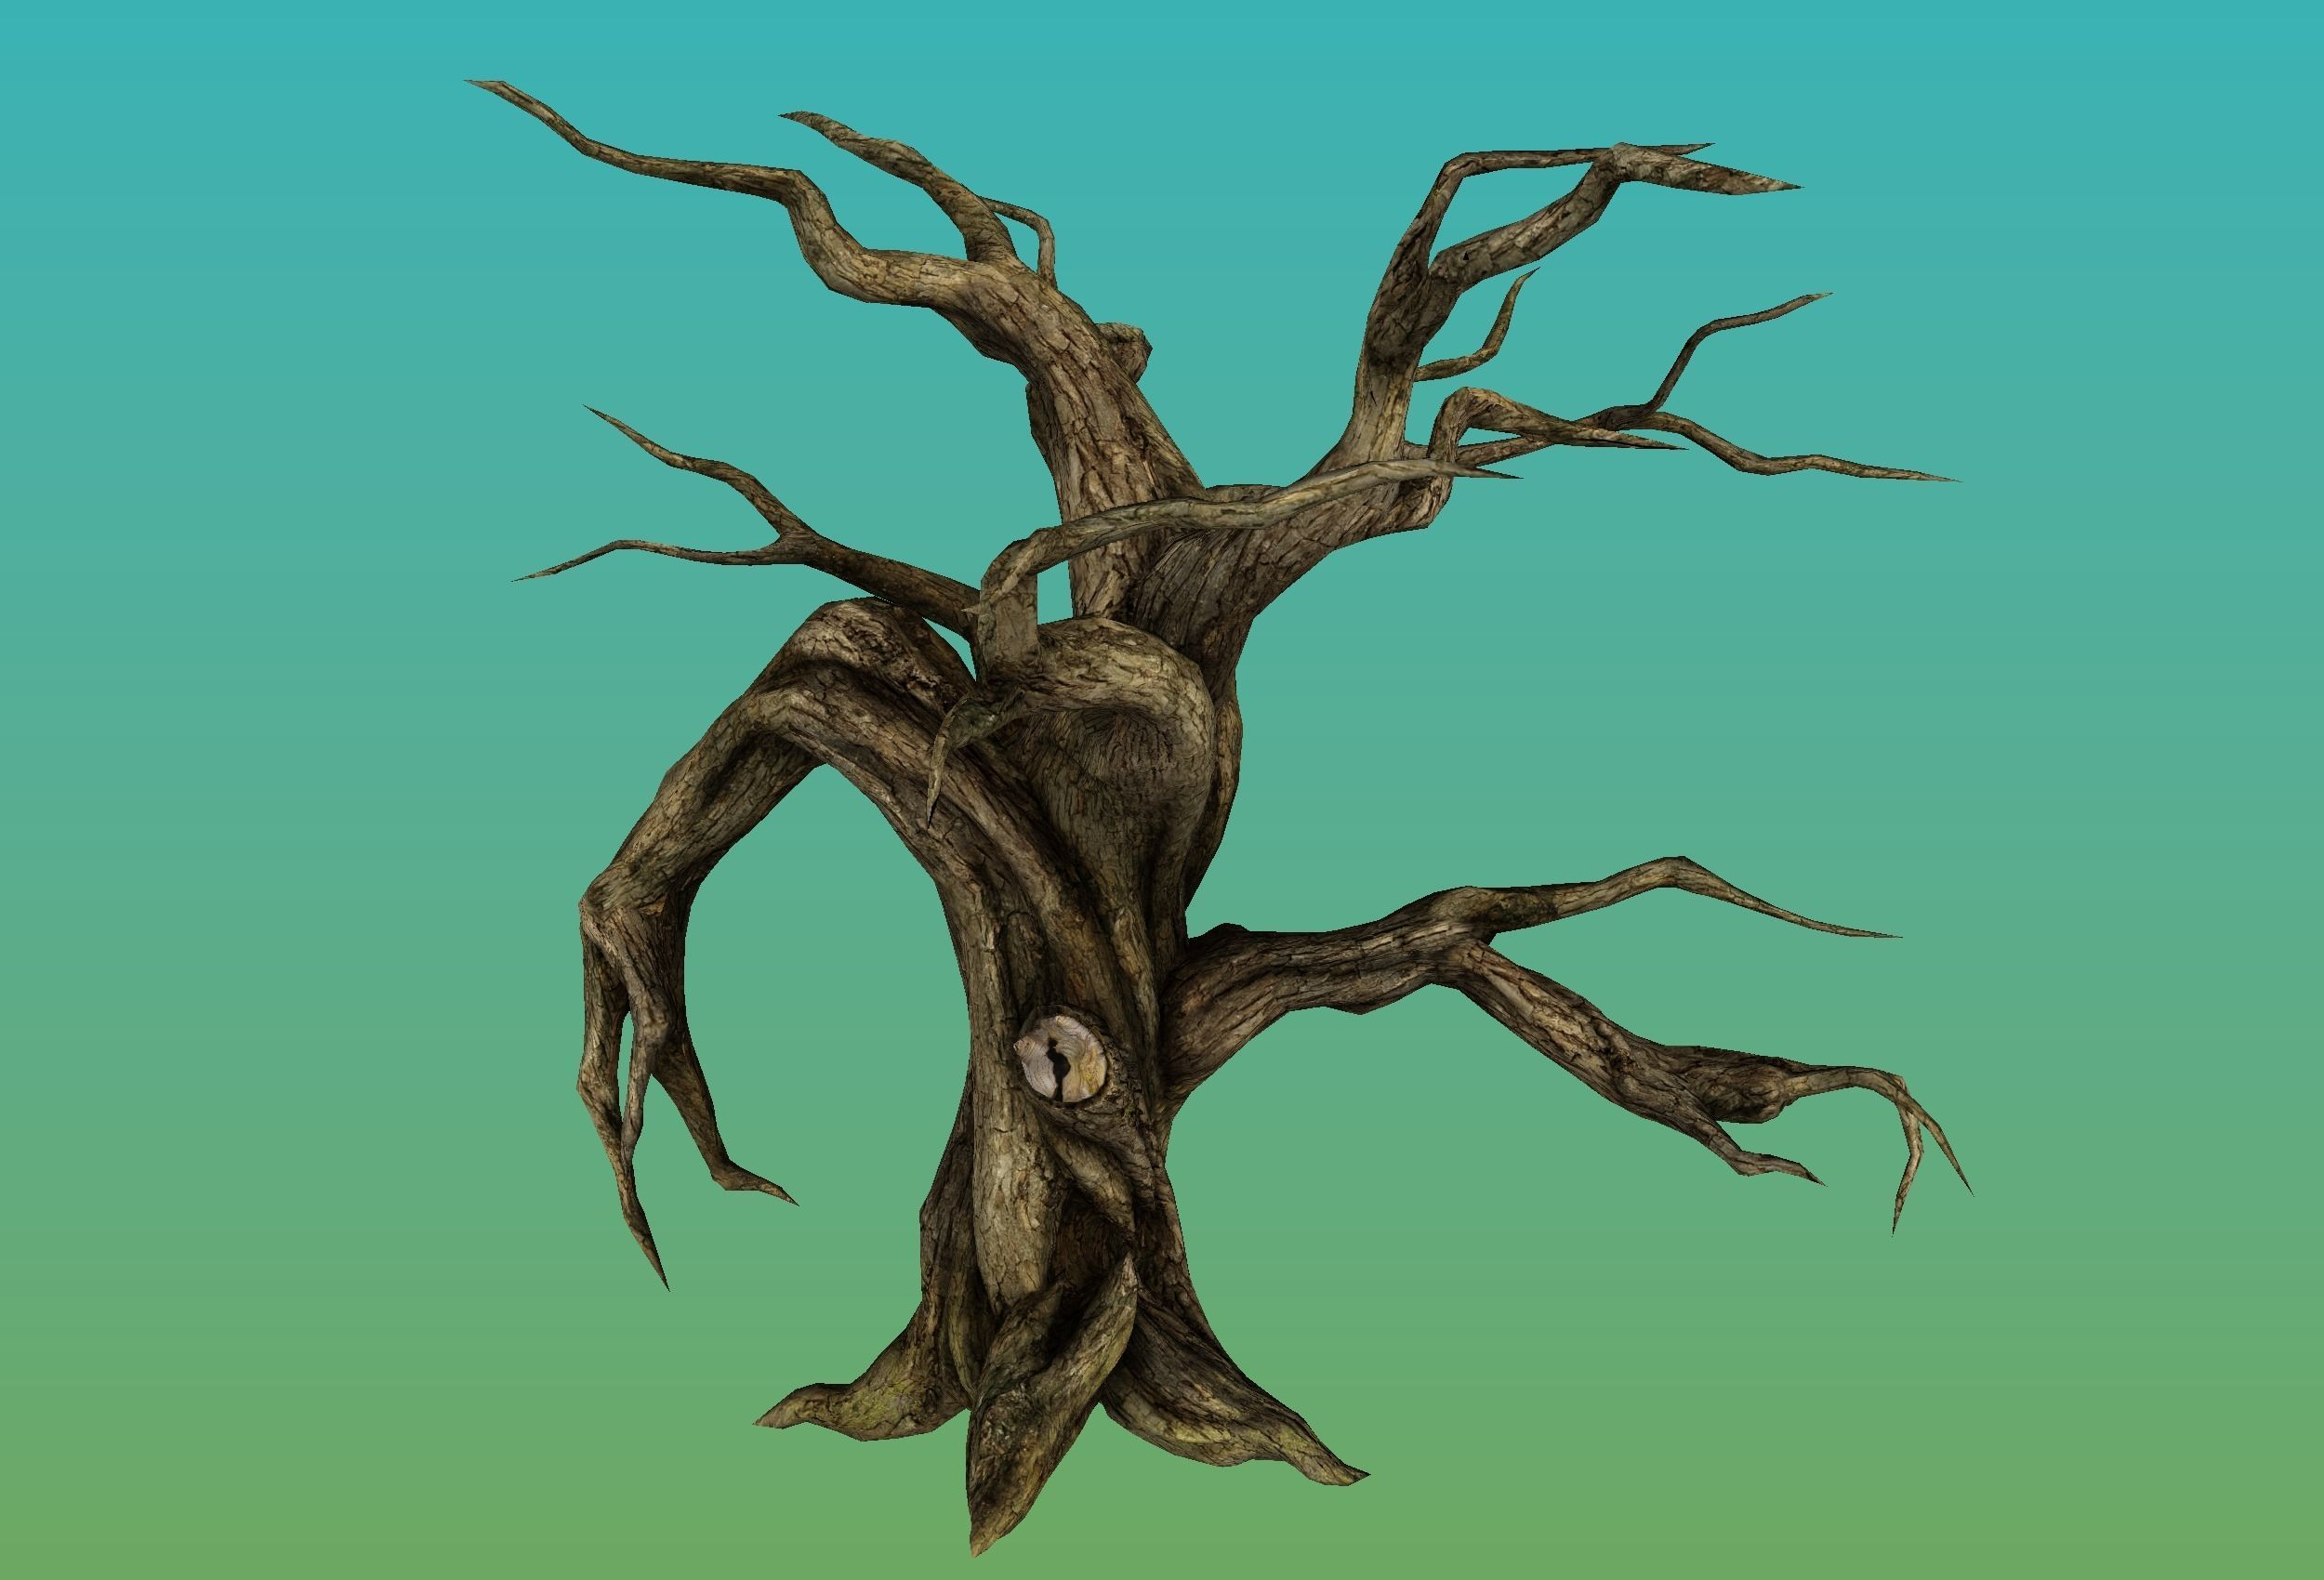 3d Model Ent Monster Tree 2 Cgtrader Nature landscape, cartoon trees plants green grass background material, green trees illustration png clipart. ent monster tree 2 3d model